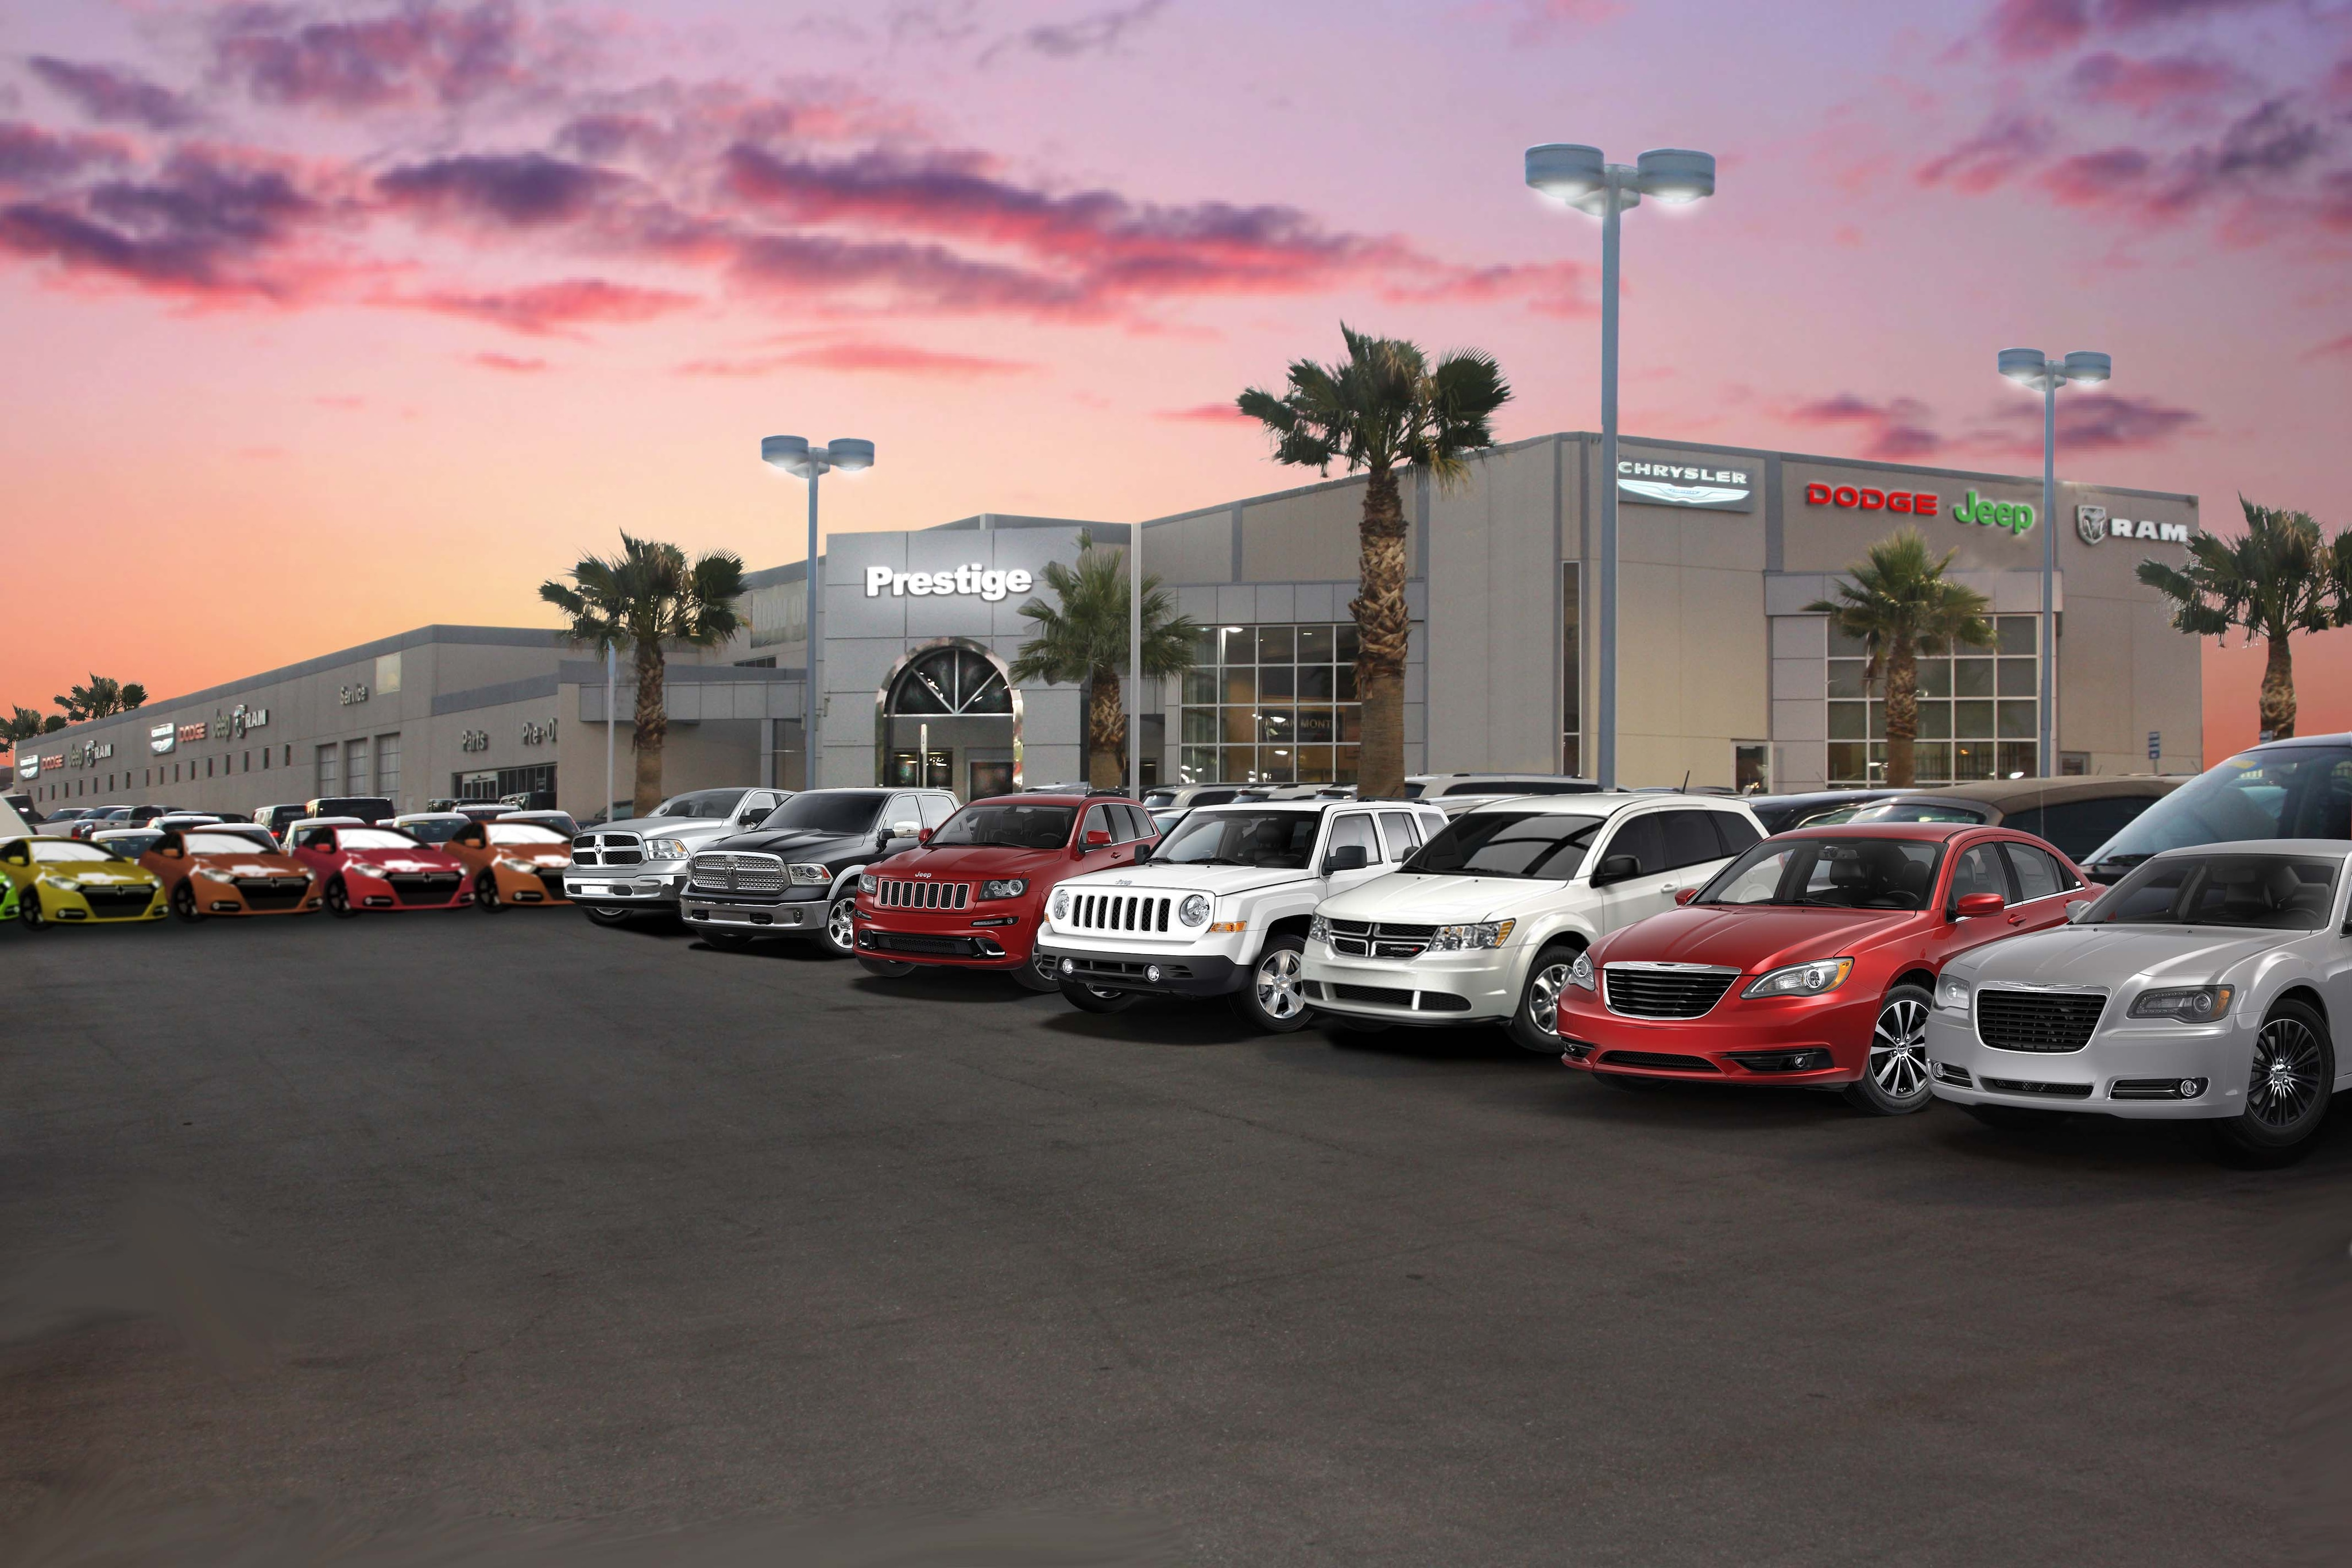 About prestige chrysler jeep dodge your las vegas new and used car dealer